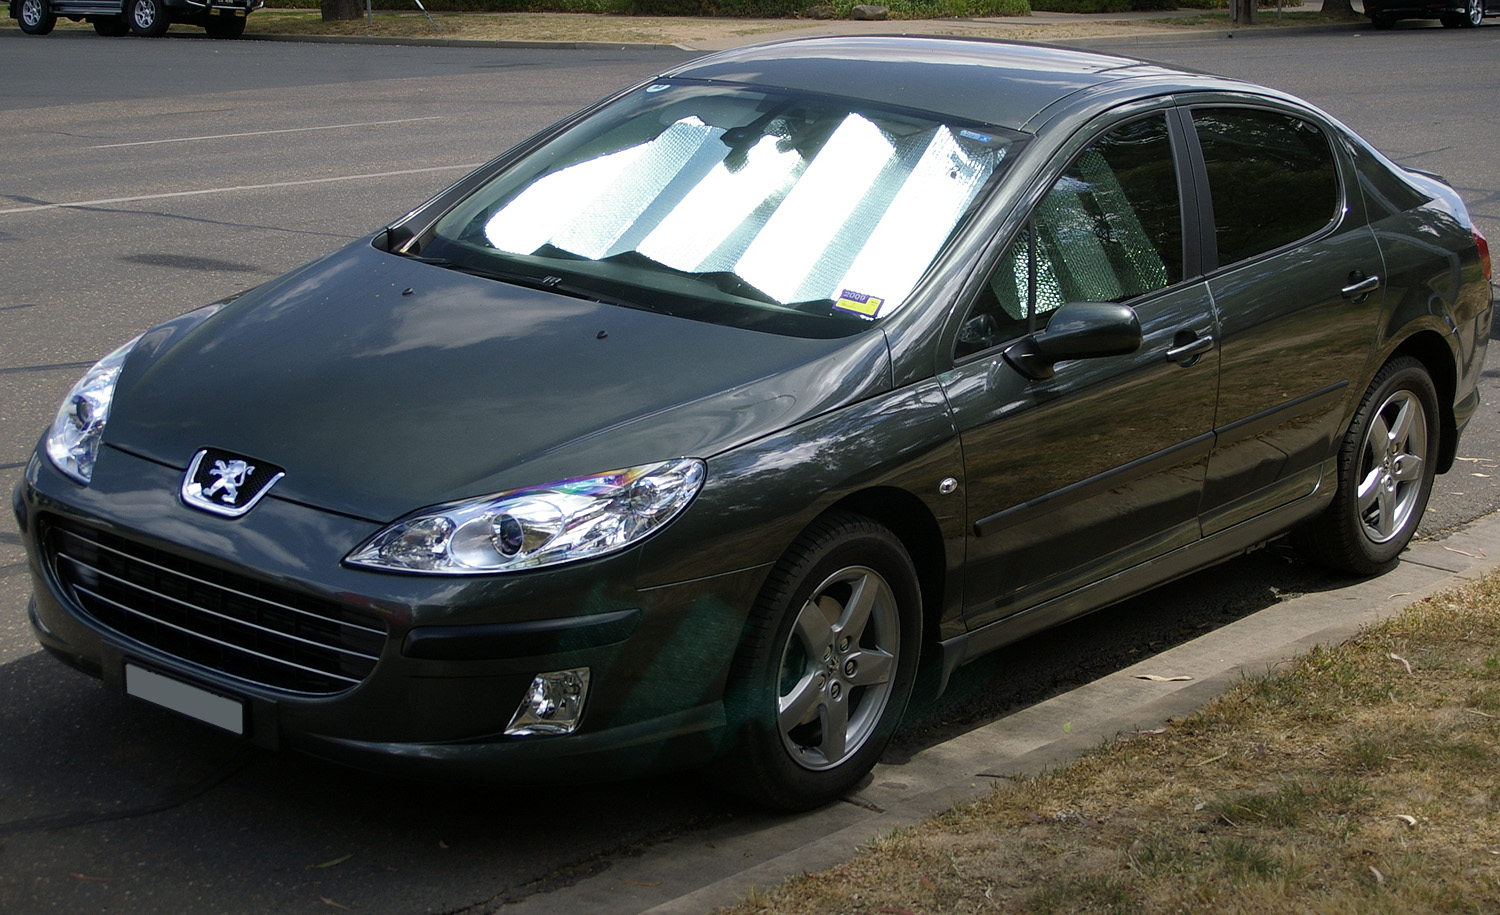 file peugeot 407 hdi front view jpg wikimedia commons. Black Bedroom Furniture Sets. Home Design Ideas